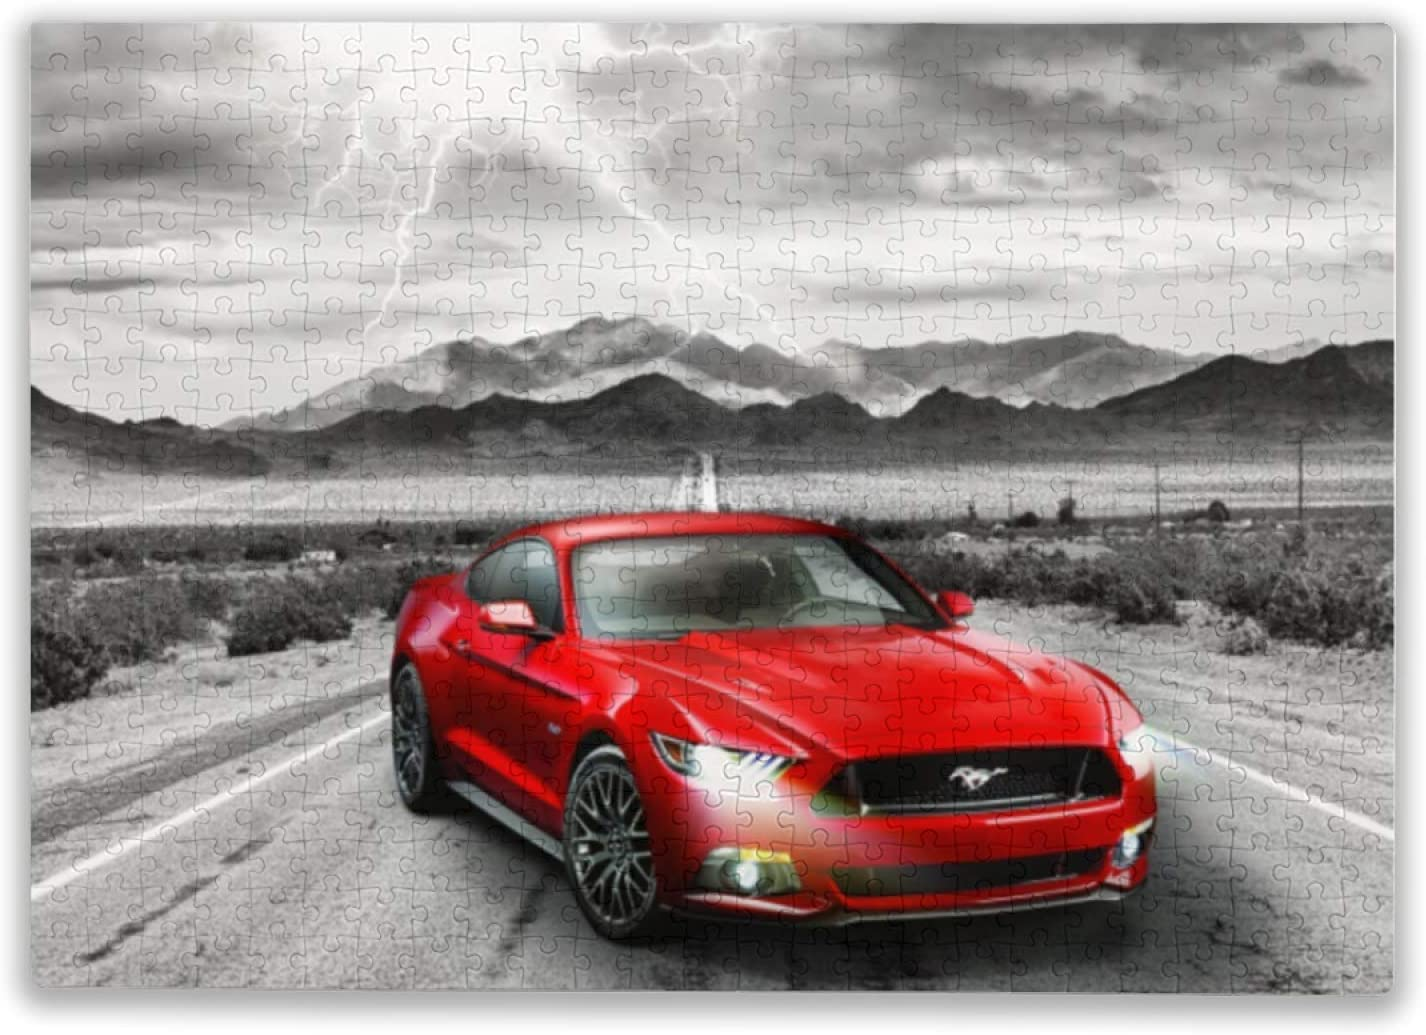 2015 Ford Mustang GT Fifty Years of Power Jigsaw Puzzles 300 Pieces Car Puzzles for Adults - Cozy Retreat Decor 300 Pieces Large Format Family Games Puzzles- Every Piece is Unique and Best Game Gifts